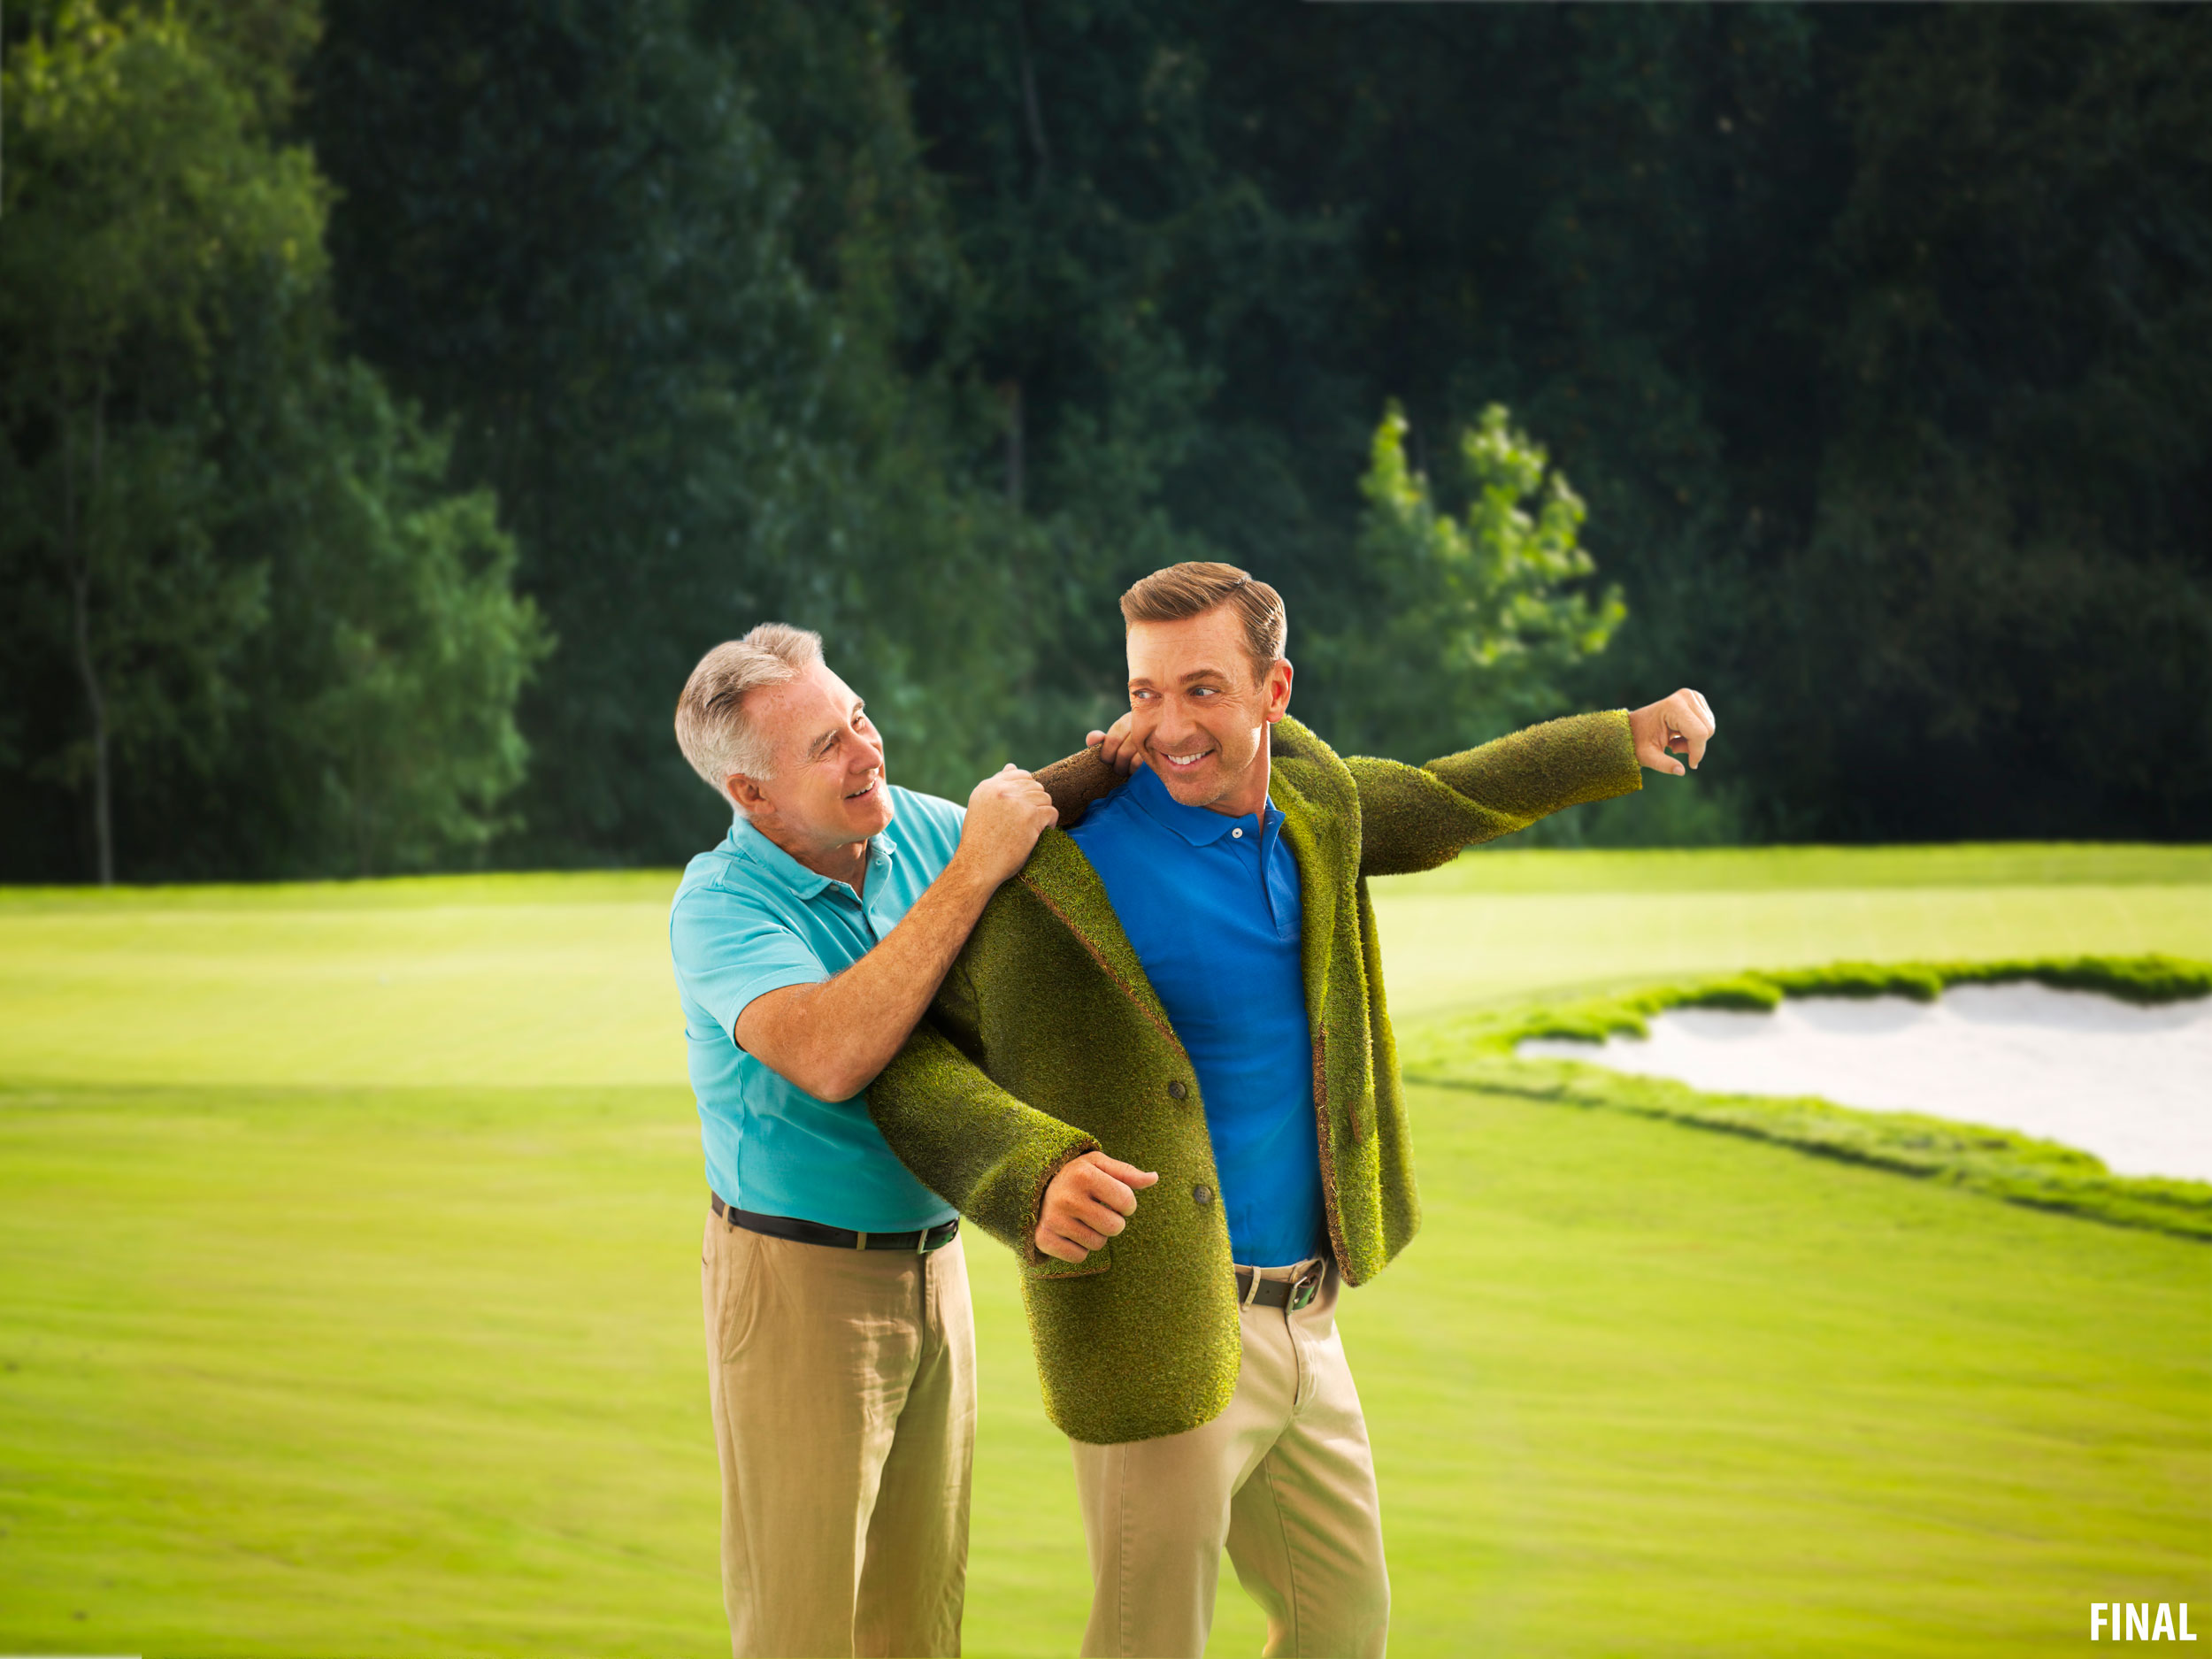 professional composite image of two men on golf course in grass coat